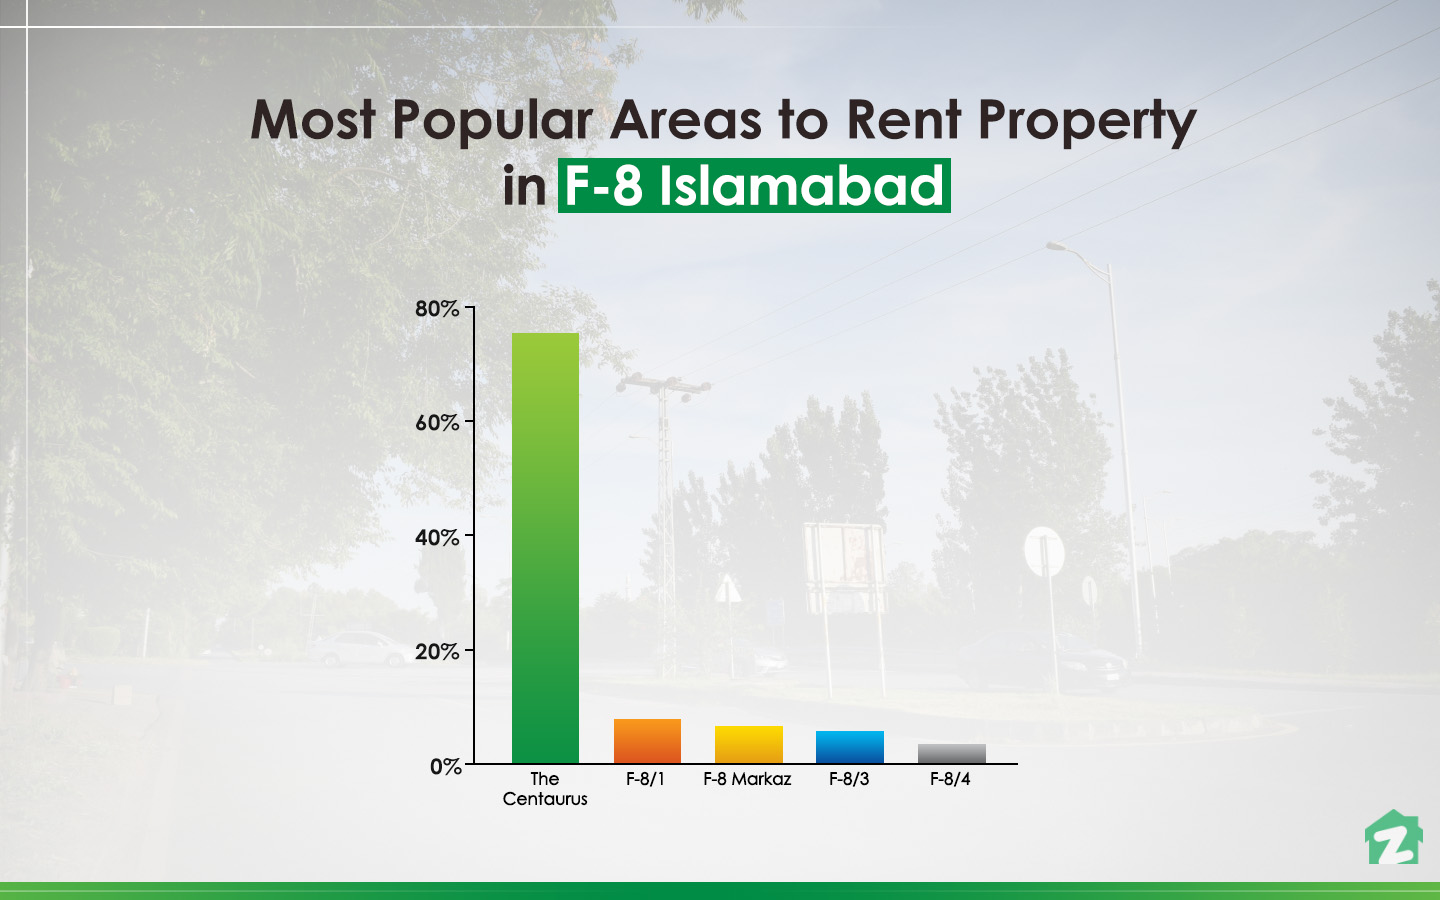 Rent-seekers have shown a growing interest in the properties of Centaurus Mall, situated in F-8/4